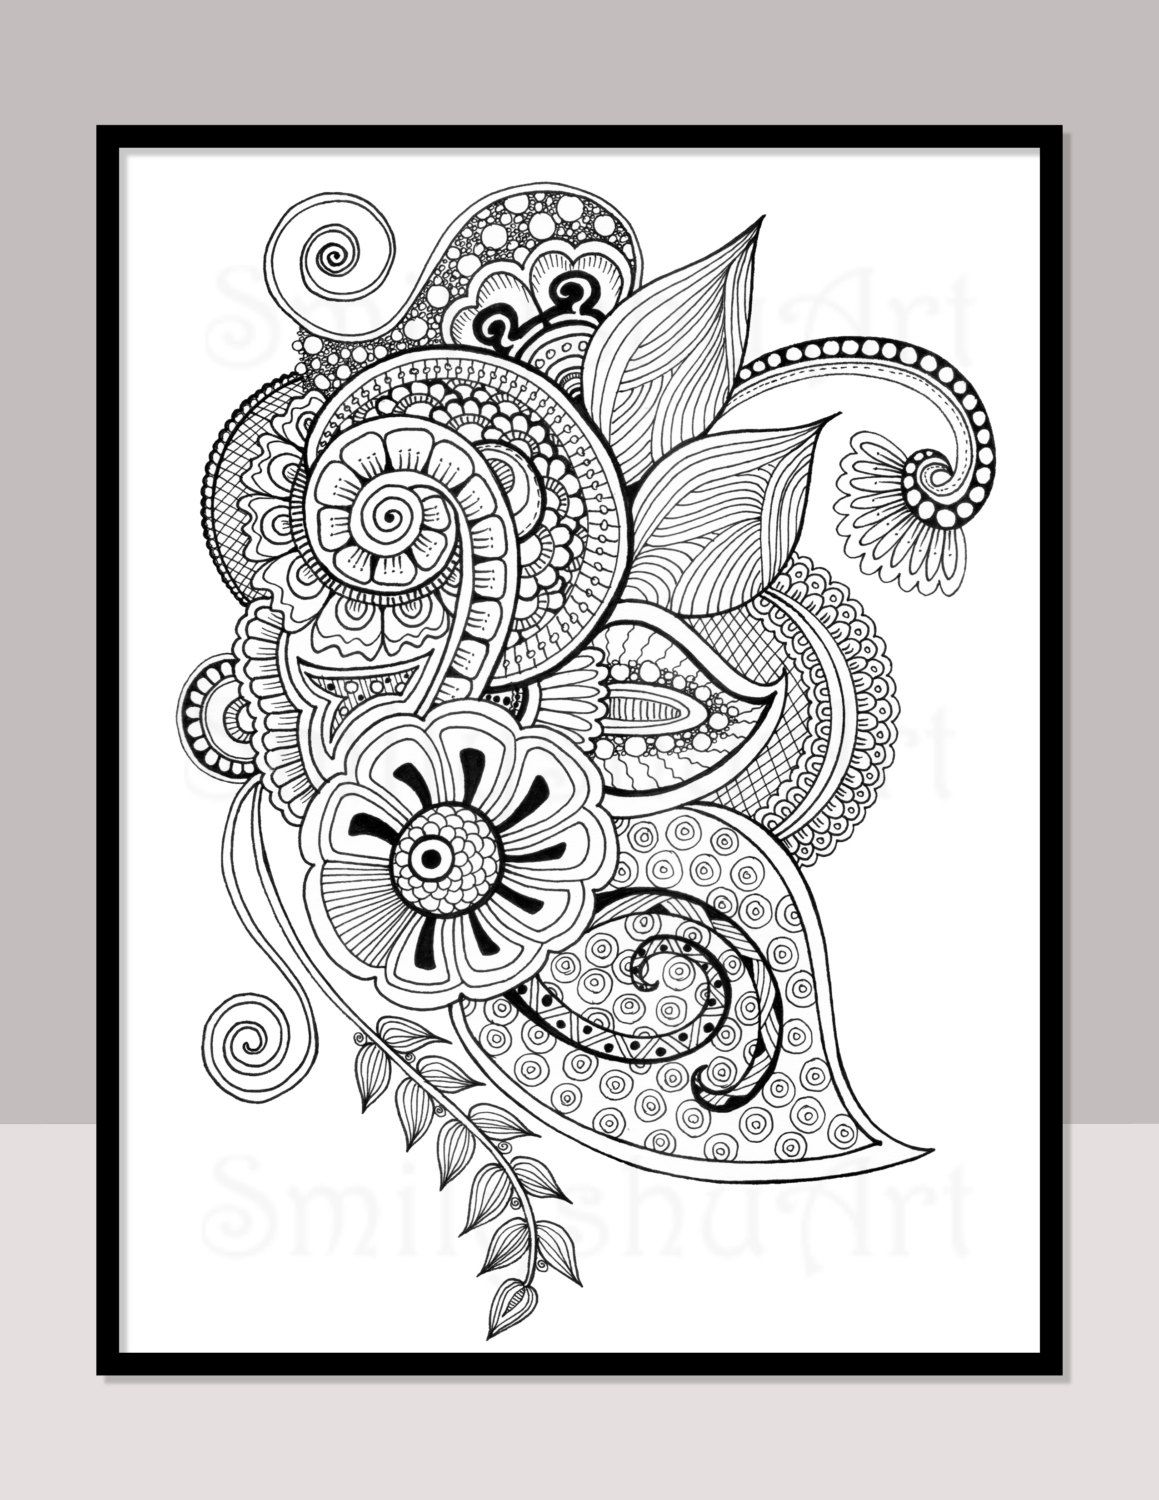 printable zentangle coloring page for adults mindfulness coloring henna design tattoo design. Black Bedroom Furniture Sets. Home Design Ideas